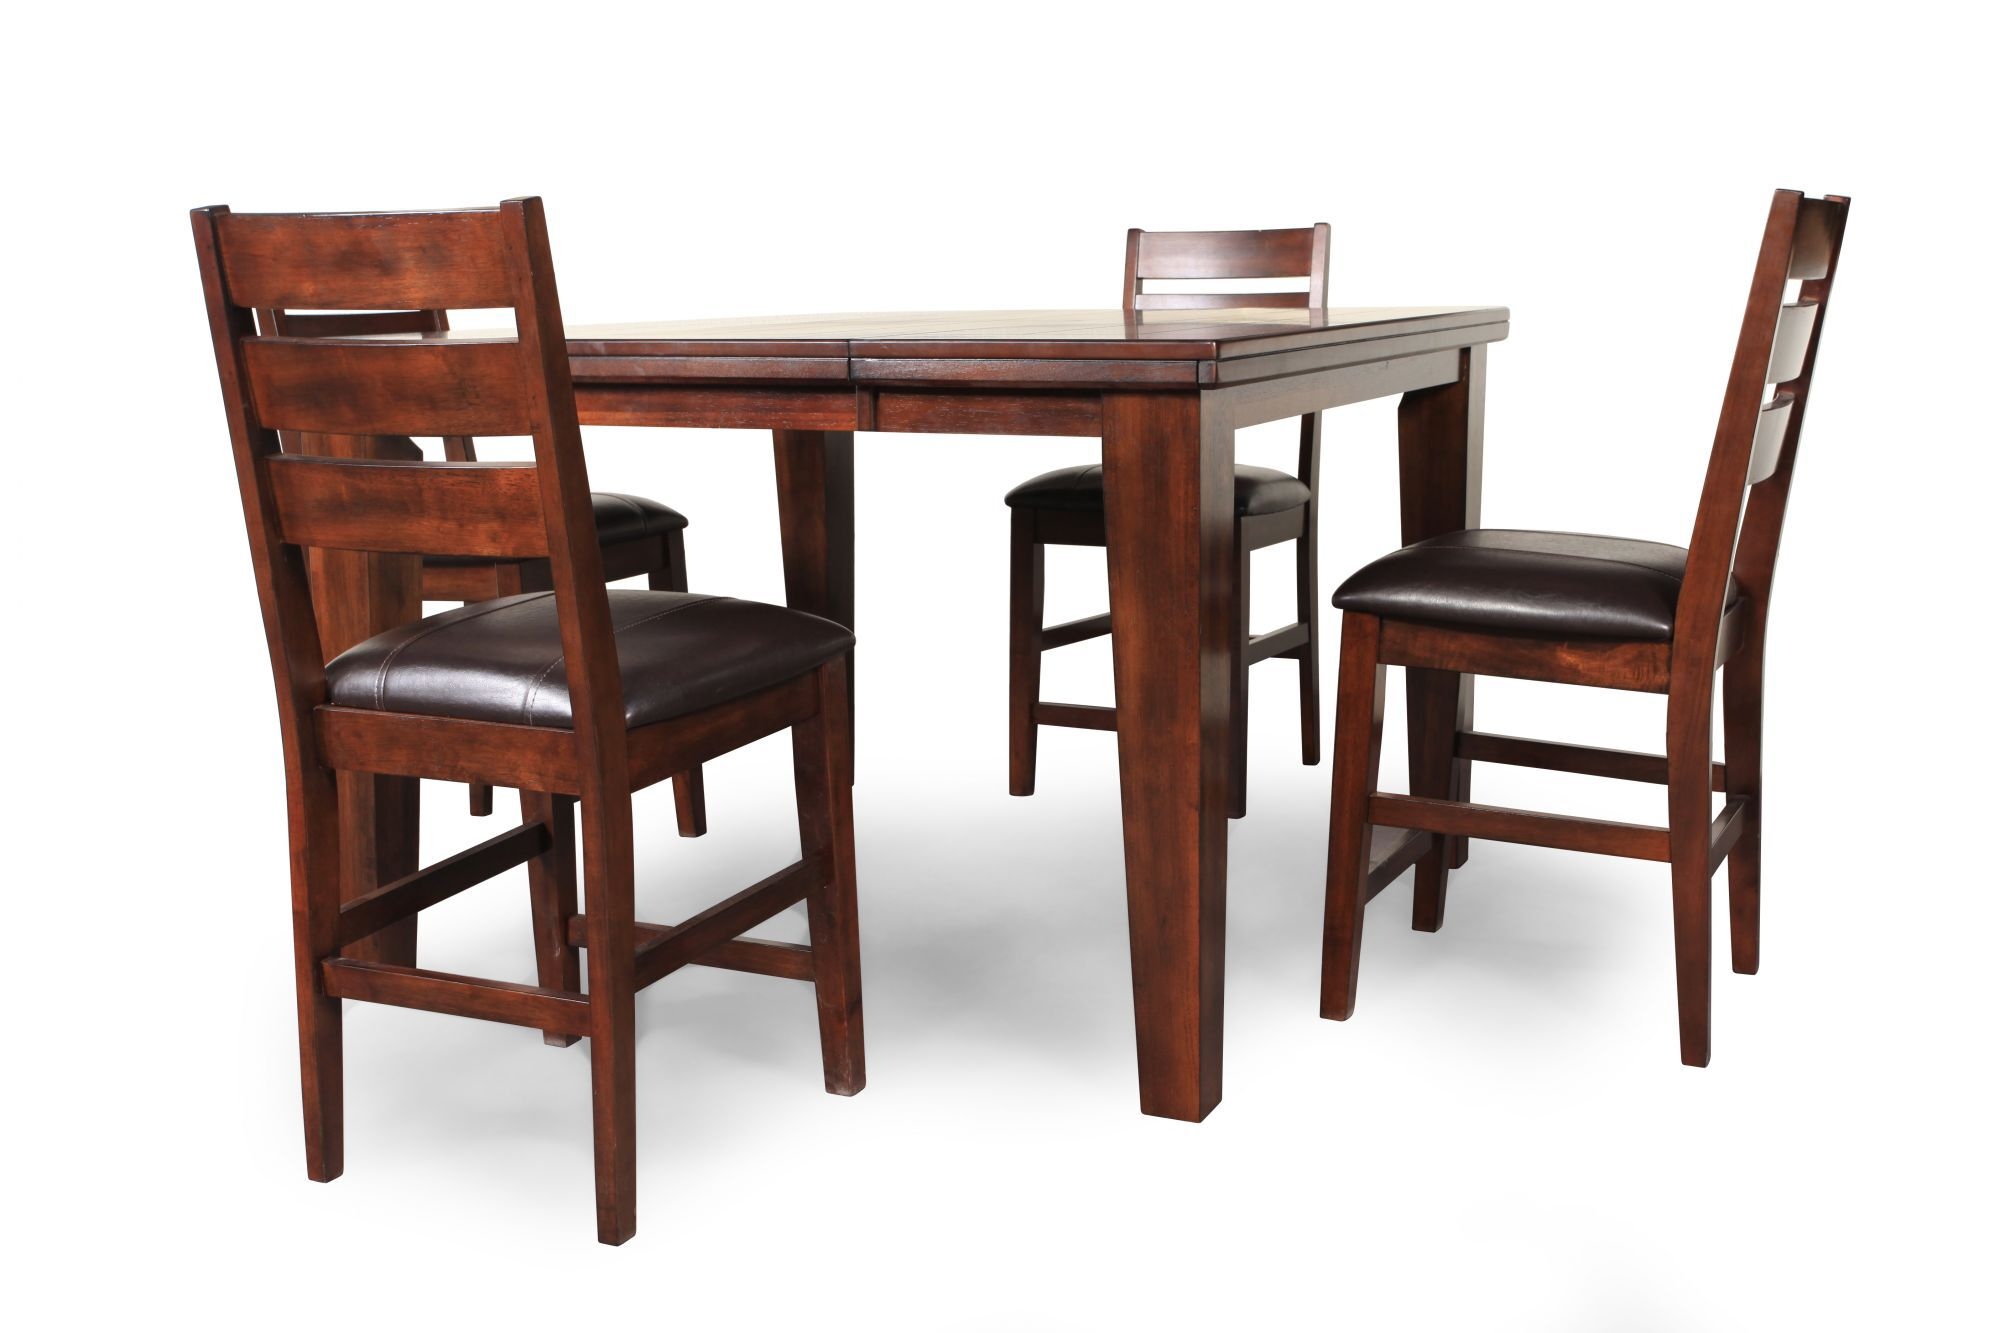 Images Five-Piece Traditional 36\u0026quot; Pub Set with Leaf Insert in Dark Brown Five-Piece Traditional 36\u0026quot; Pub Set with Leaf Insert in Dark Brown  sc 1 st  Mathis Brothers & Five-Piece Traditional 36\